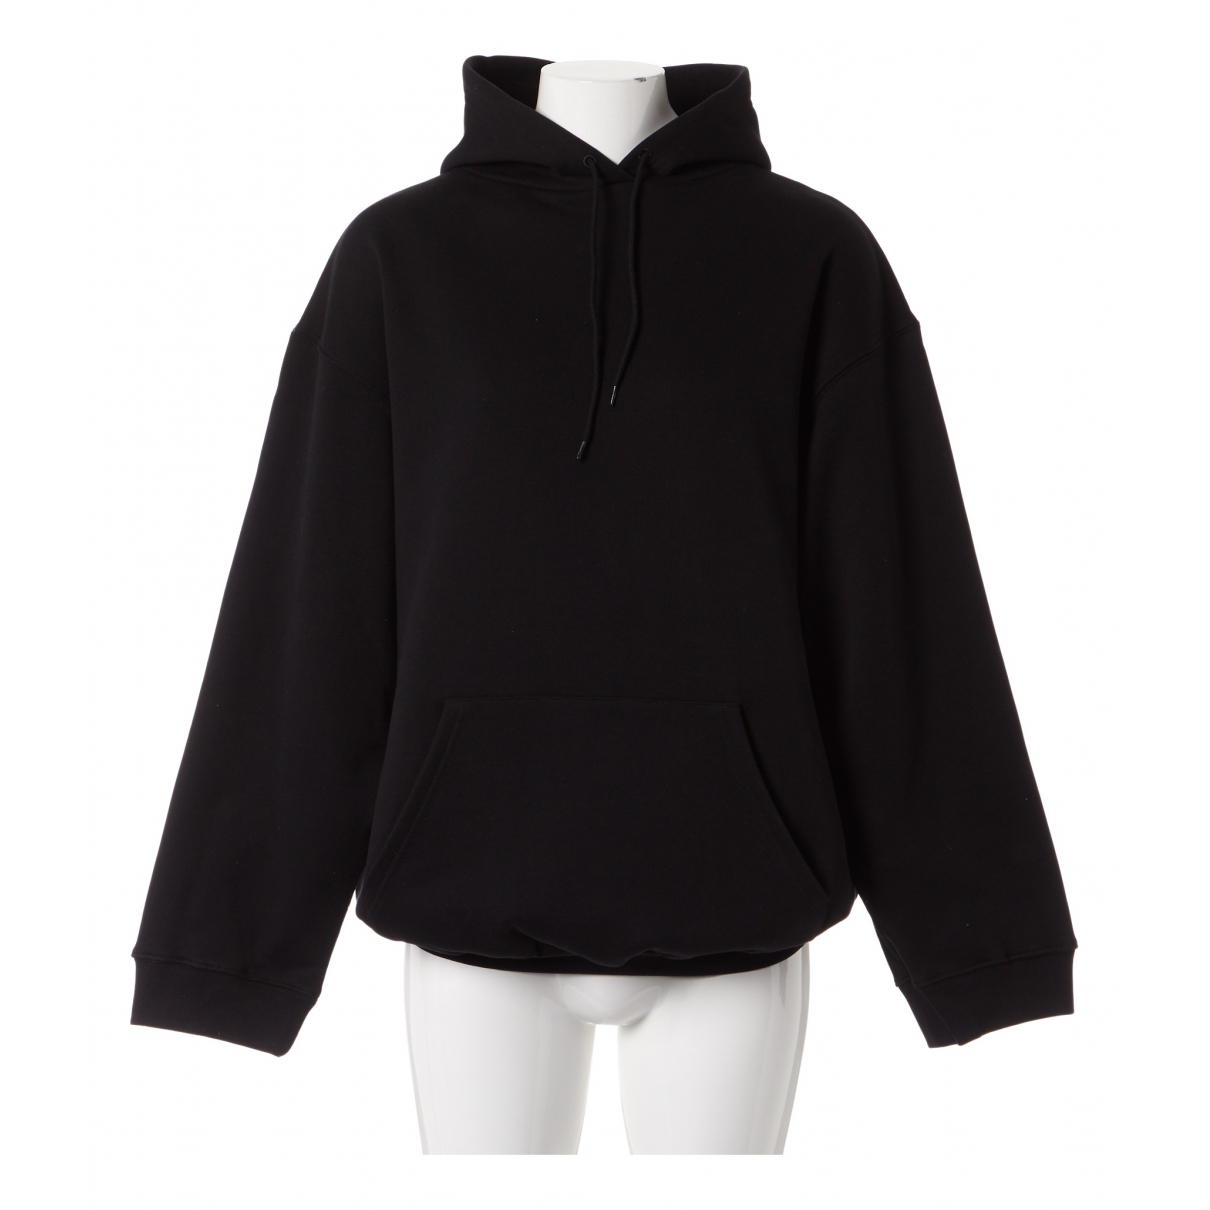 Balenciaga N Black Cotton Knitwear for Women L International